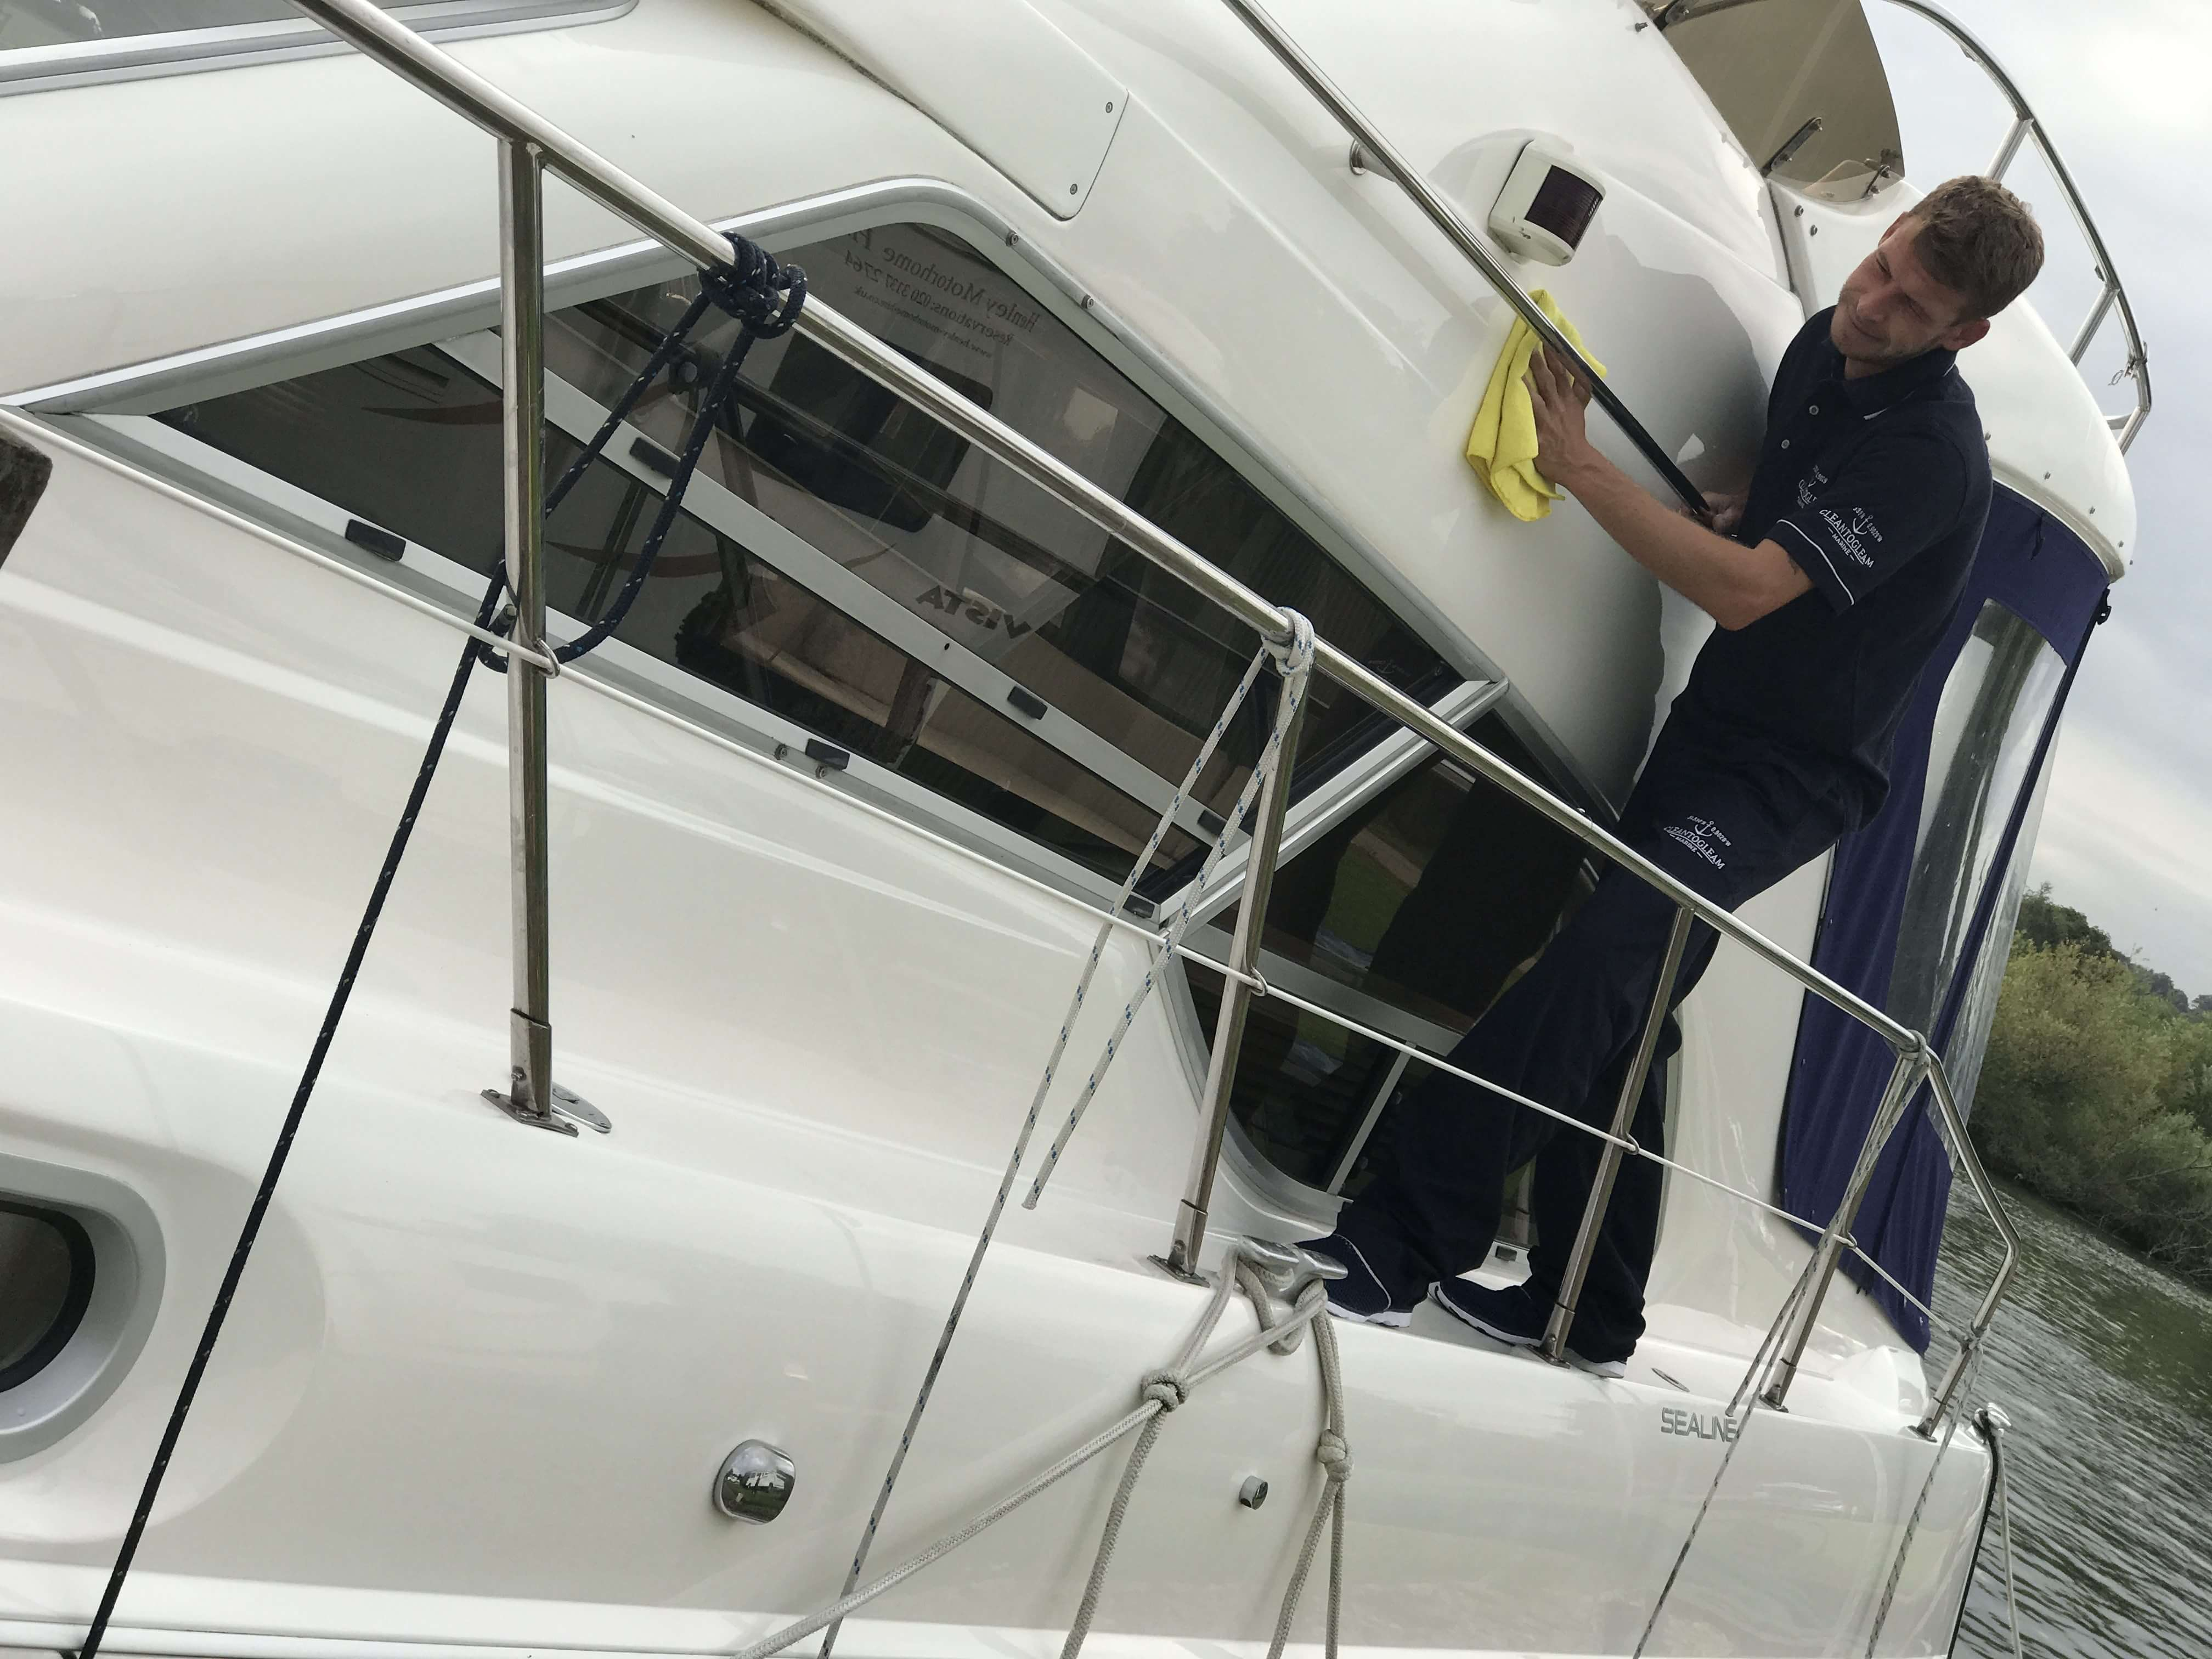 Boat Cleaning - CleanToGleam